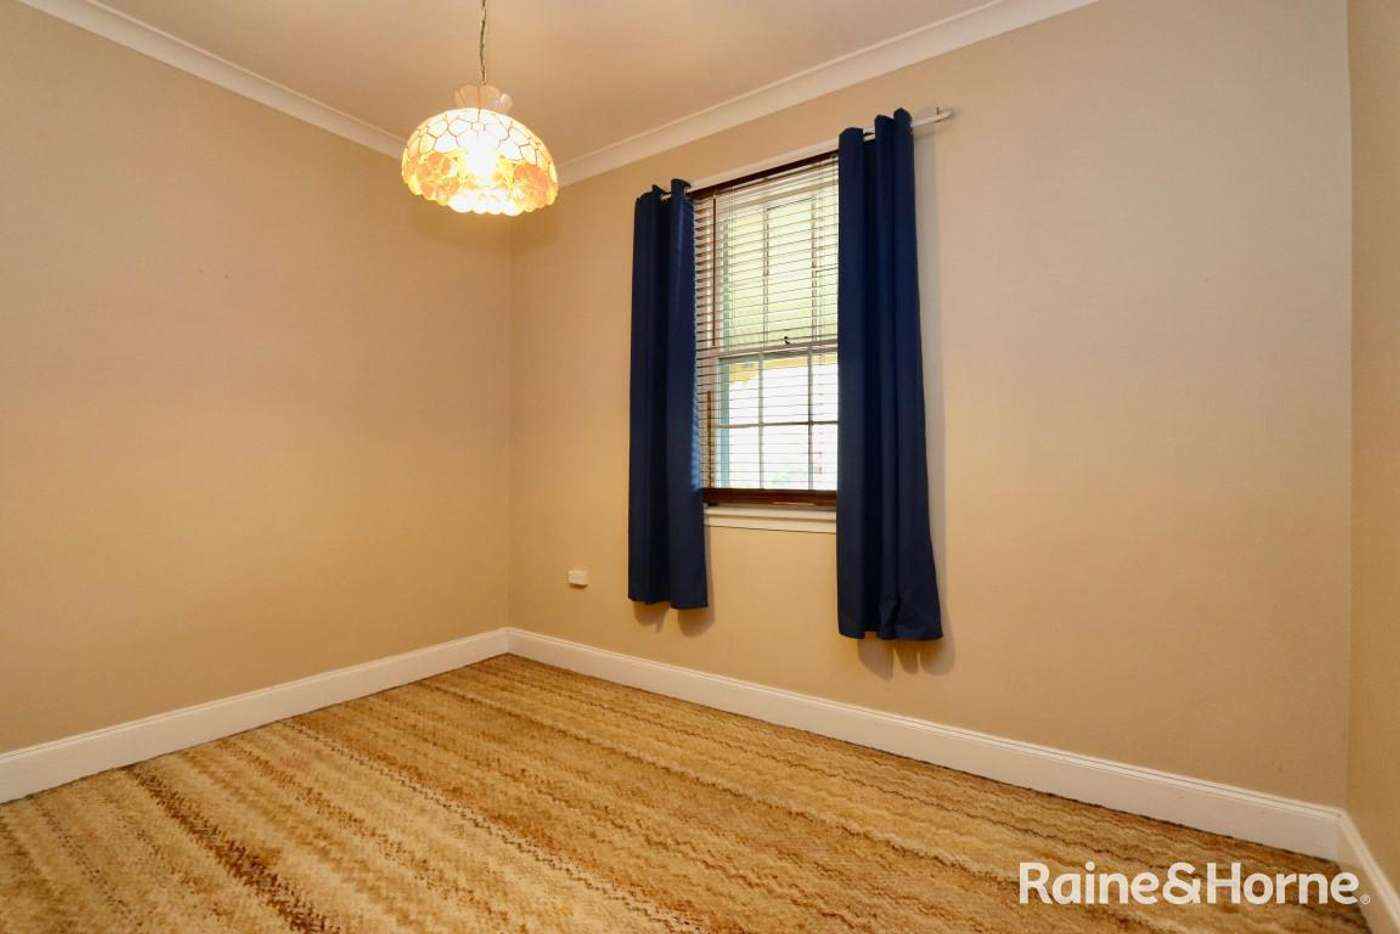 Seventh view of Homely house listing, 171 Rankin St, Bathurst NSW 2795